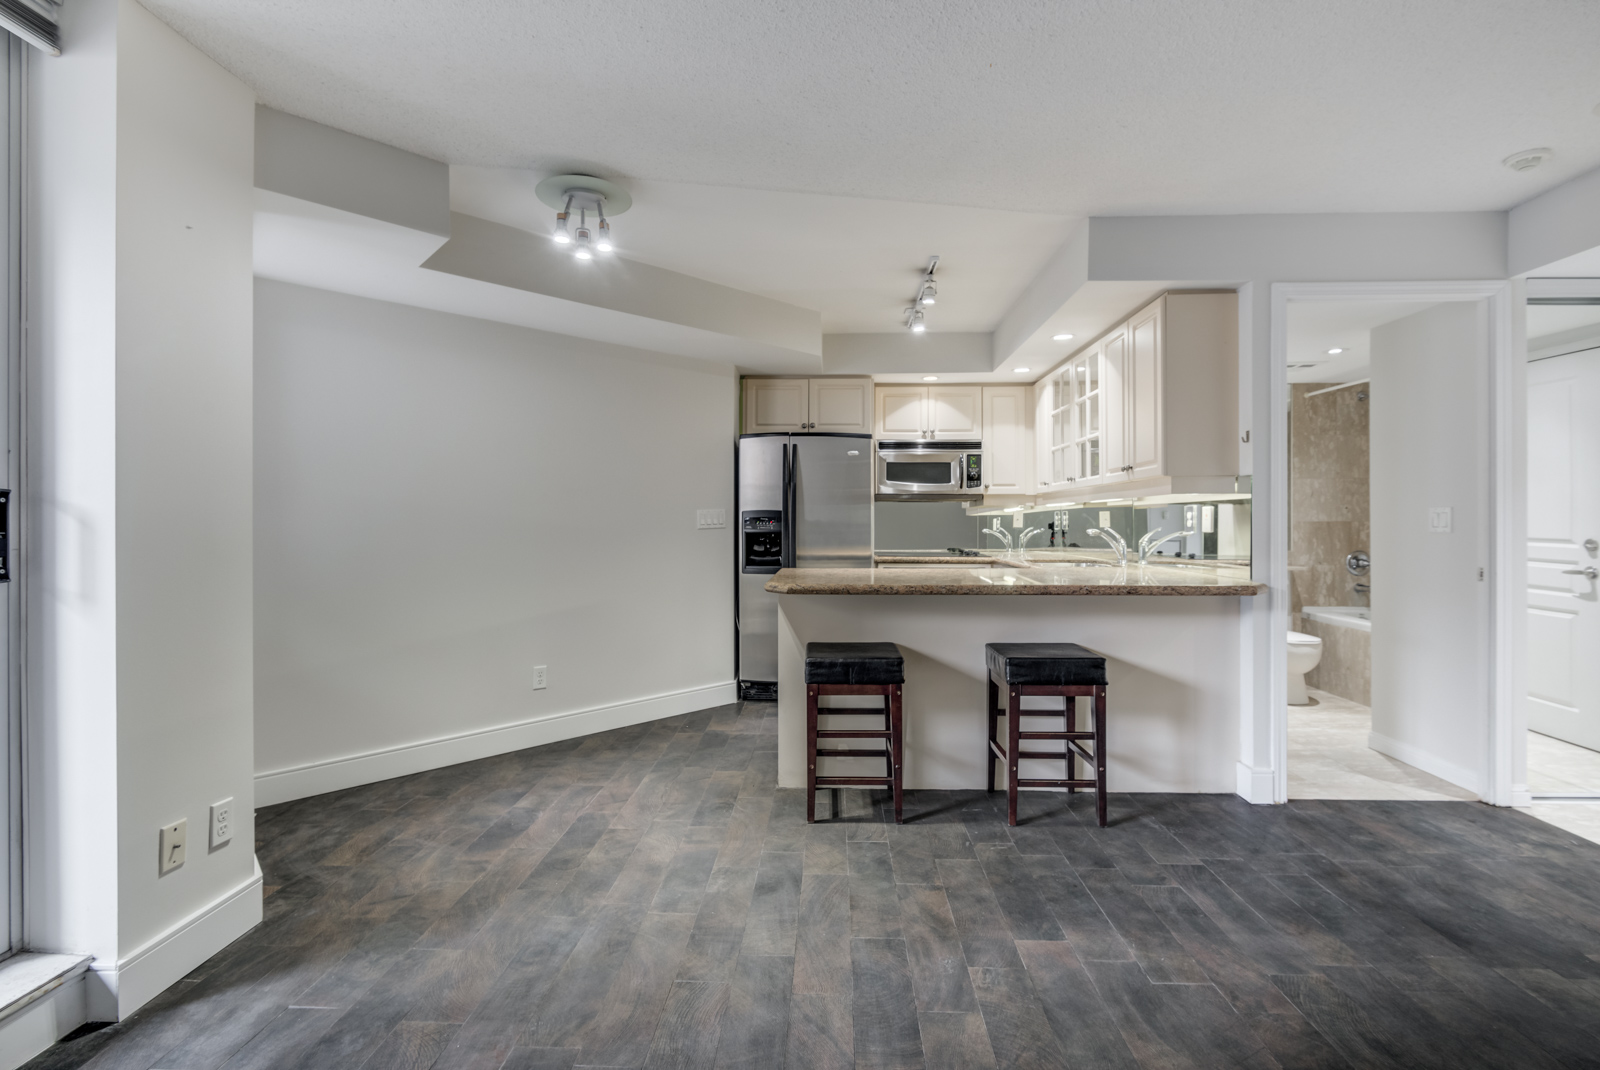 View of 140 Simcoe St E Unit 921 kitchen with 4 different types of lighting.